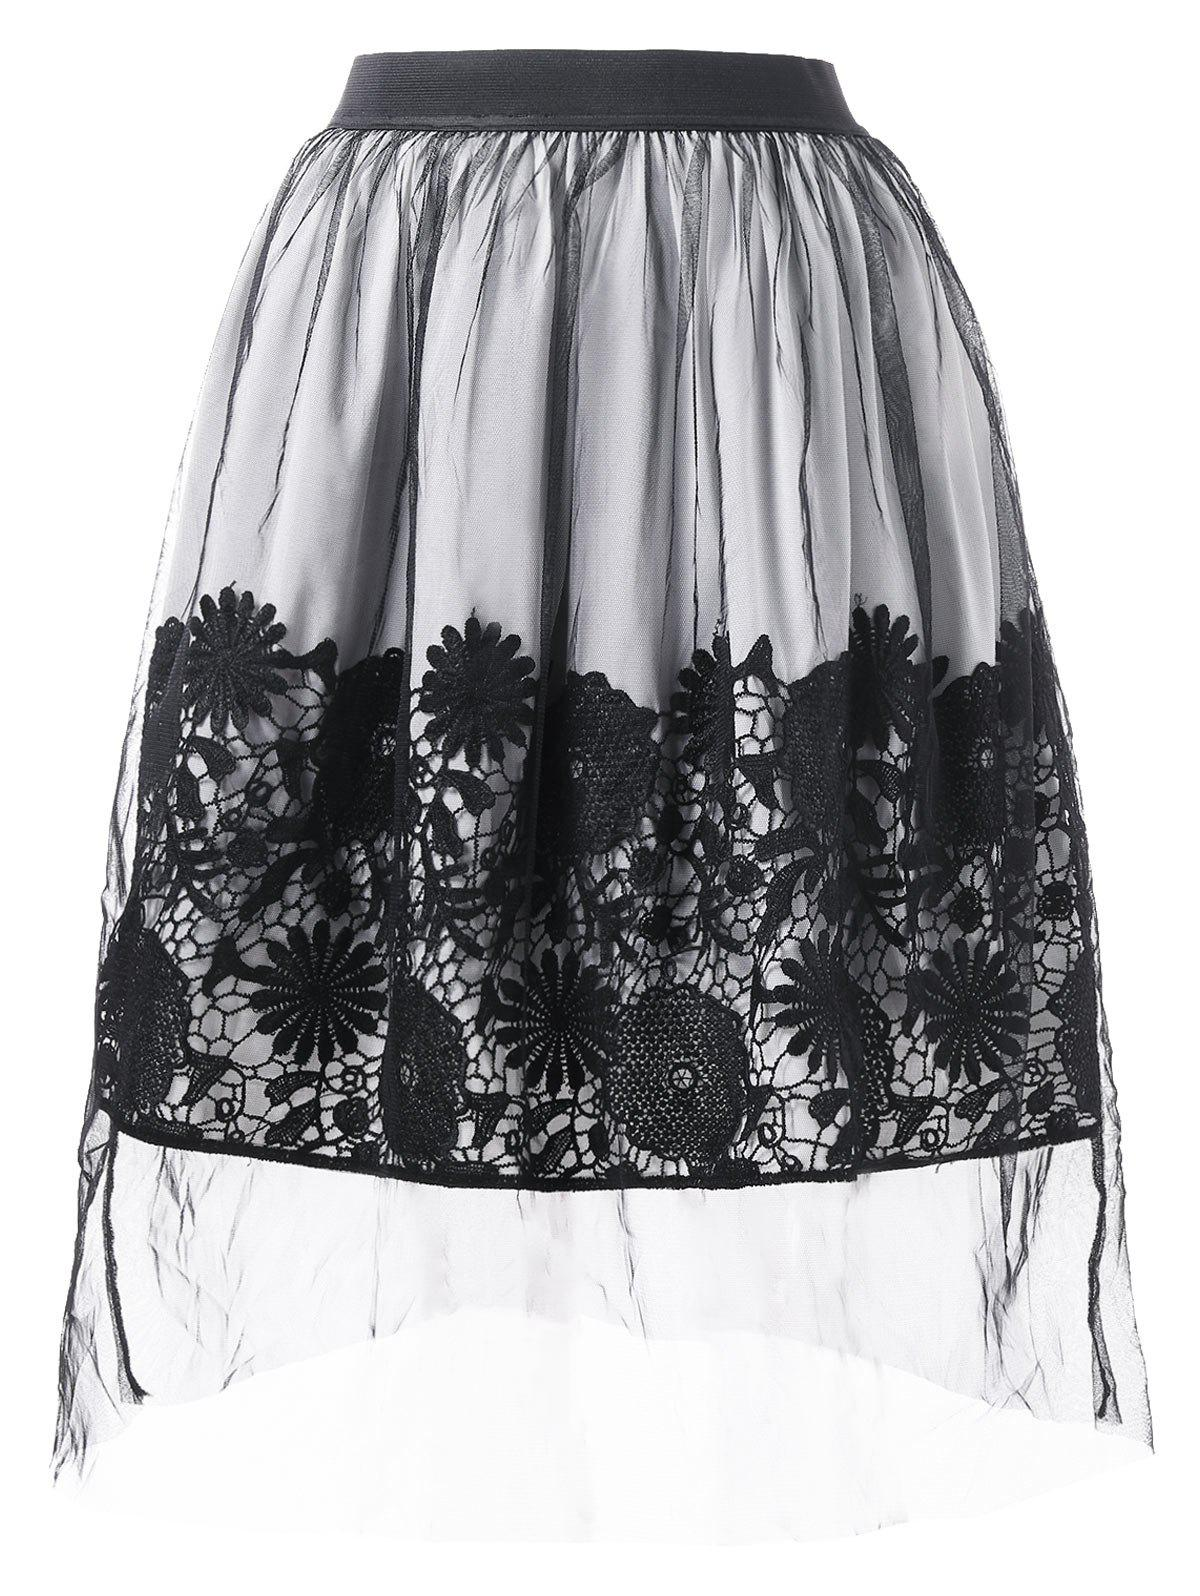 Fashion Lace Applique Mesh Overlap A Line Skirt